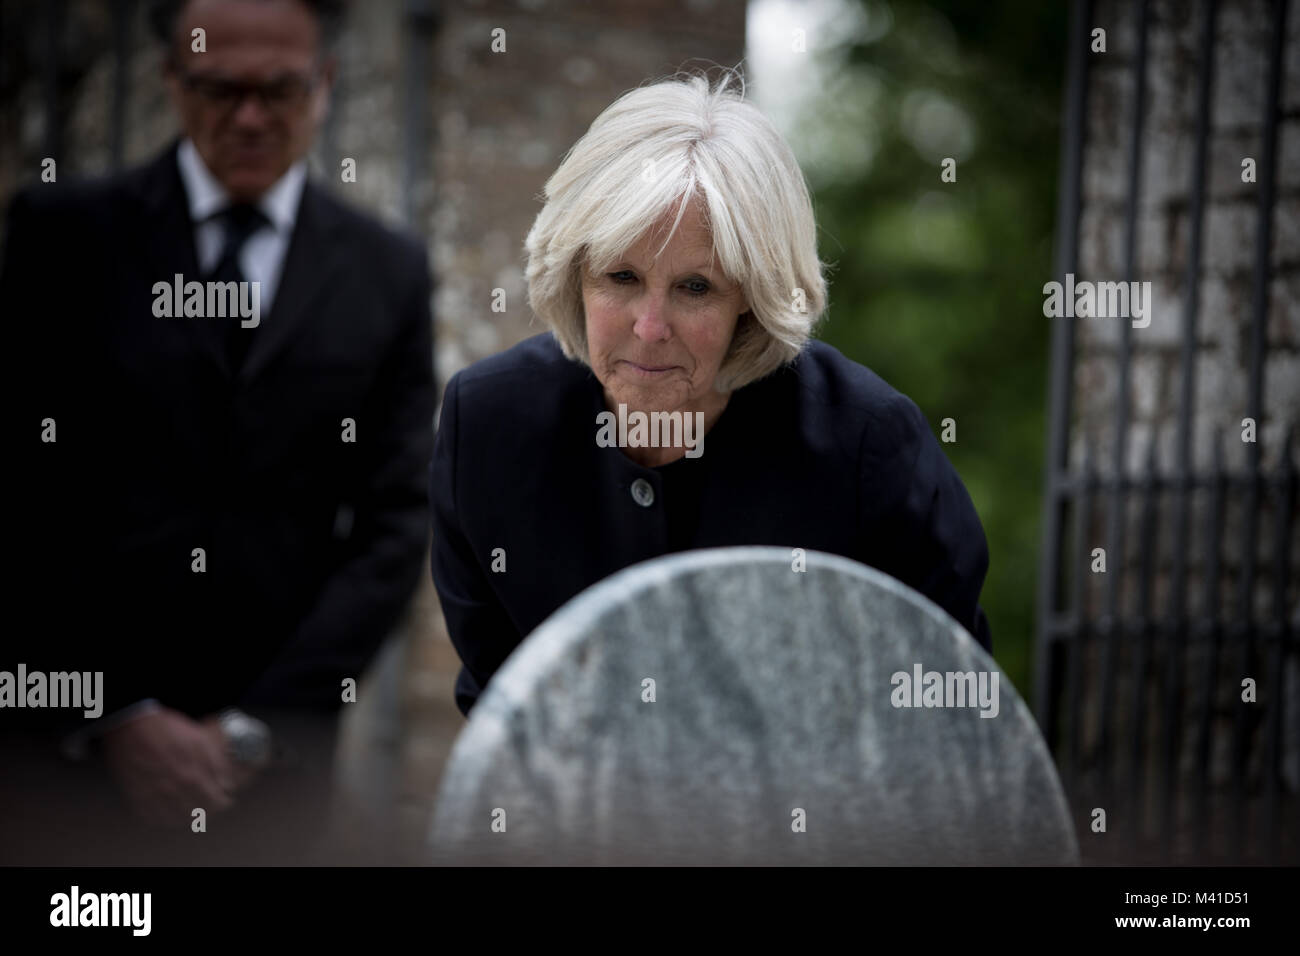 Senior woman reading a gravestone - Stock Image